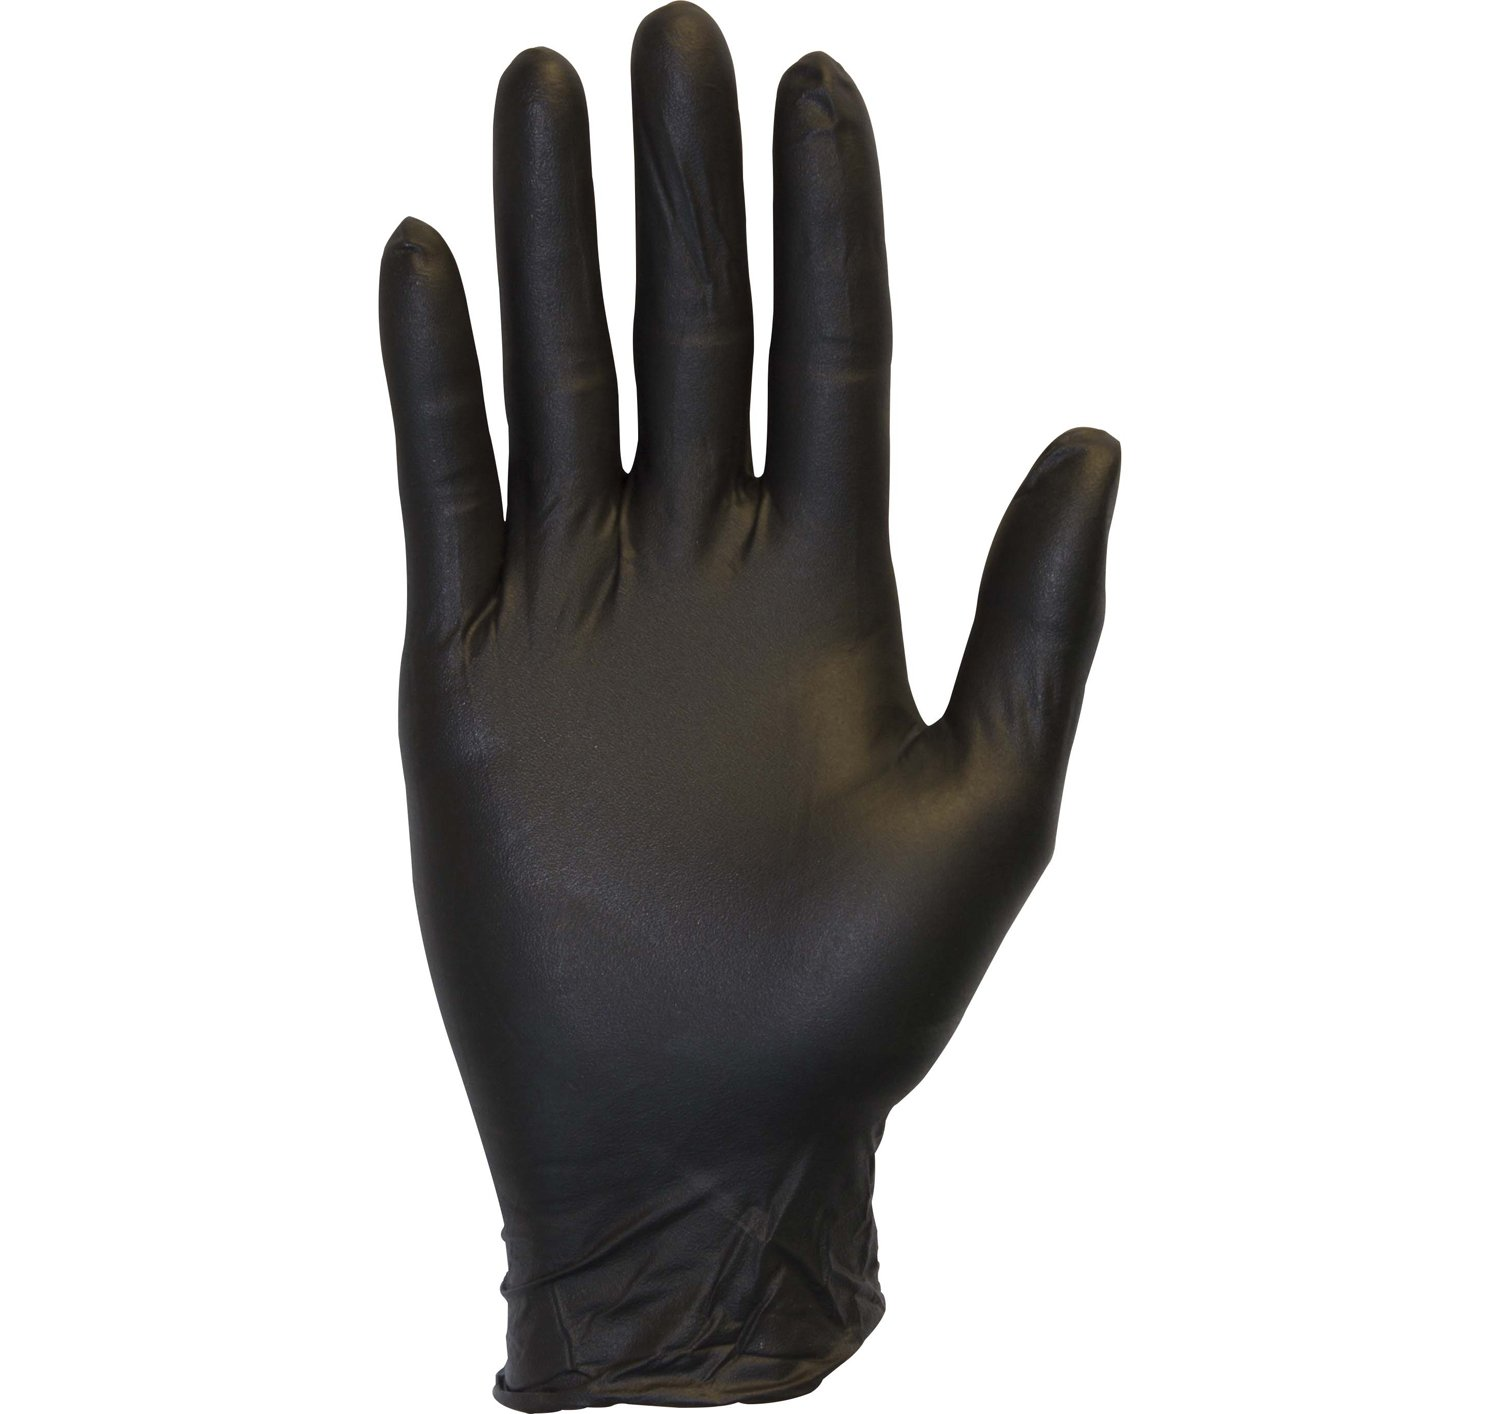 Black Nitrile Exam Gloves - Medical Grade, Disposable, Powder Free, Latex Rubber Free, Heavy Duty, Textured, Non Sterile, Work, Medical, Food Safe, Cleaning, Wholesale, Size Large (Box of 100)